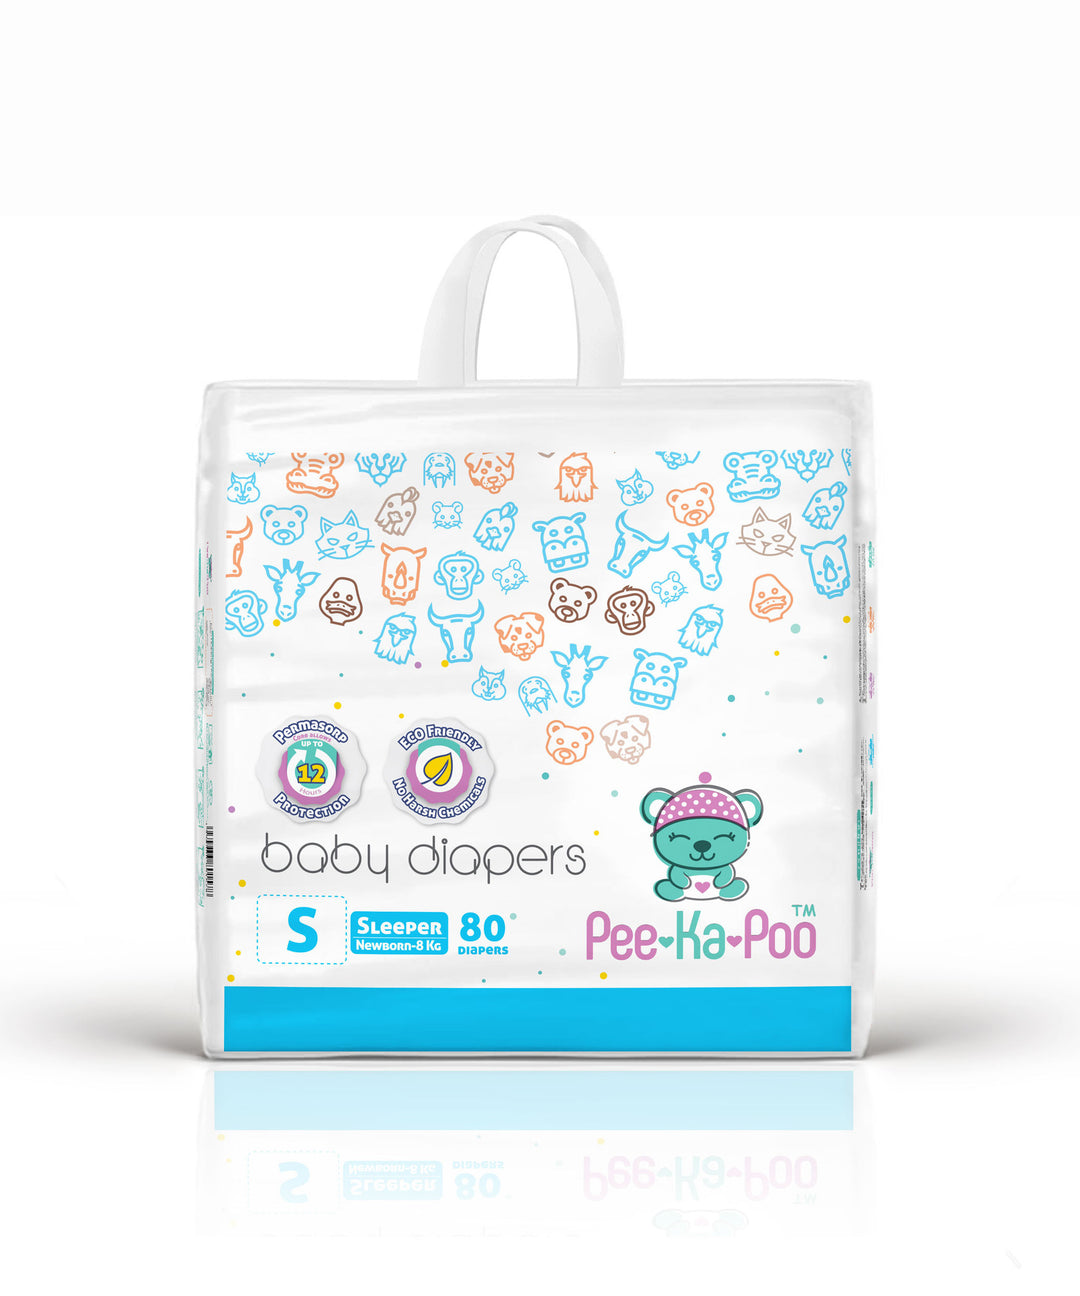 Taped Diapers Sleeper S 5kg - 8kg (80 Pieces)